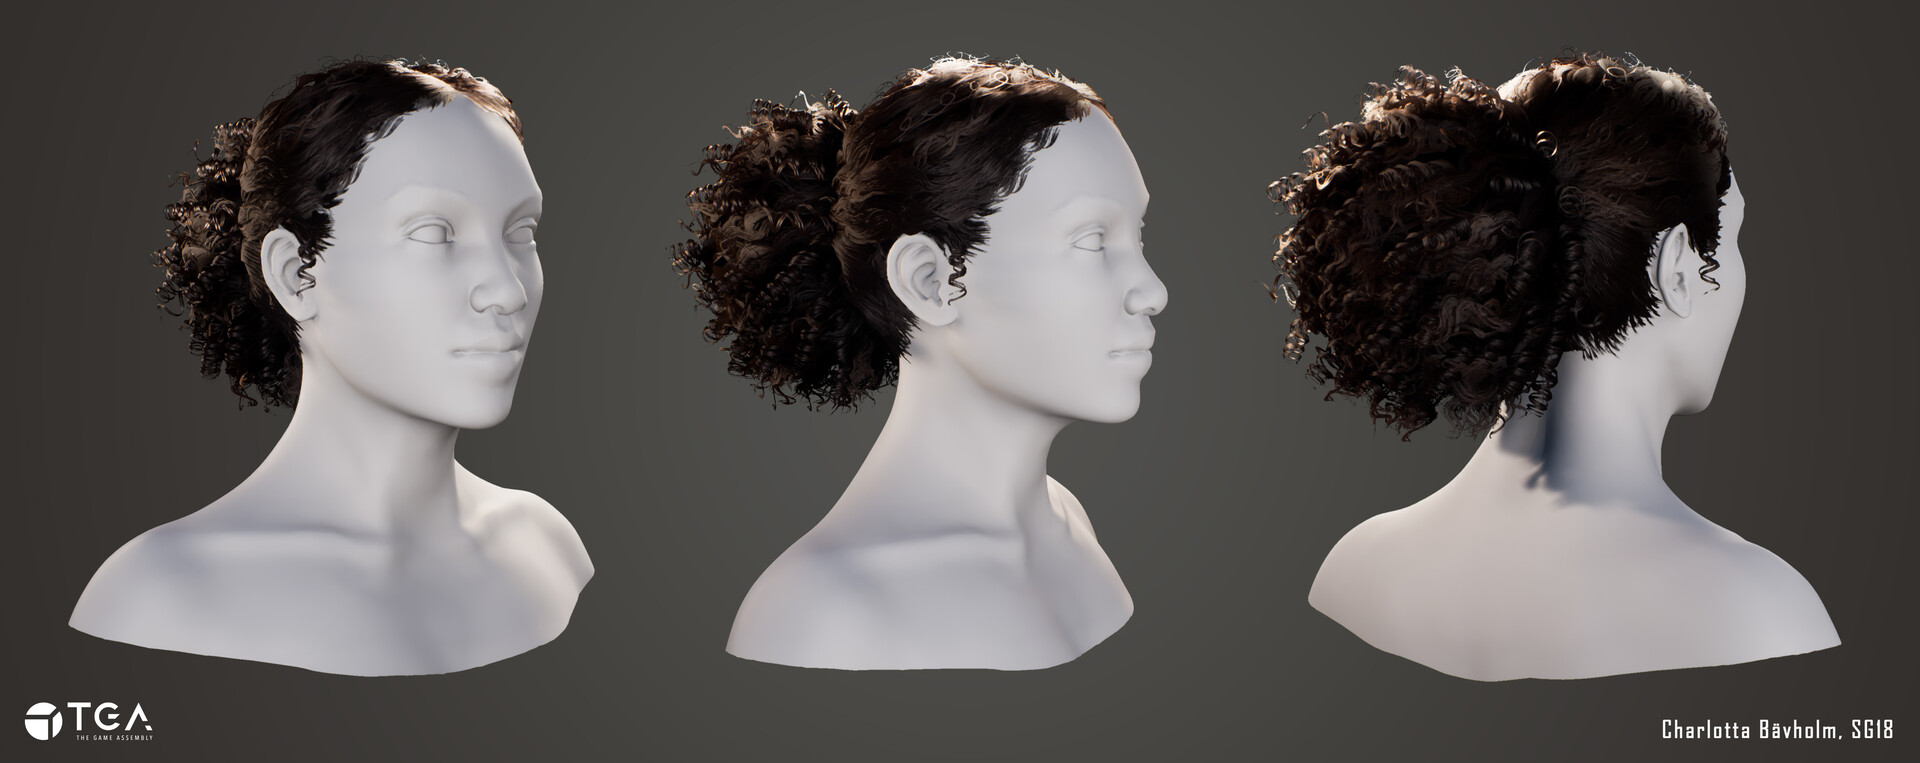 Real-time 3D hair rendered in Unreal